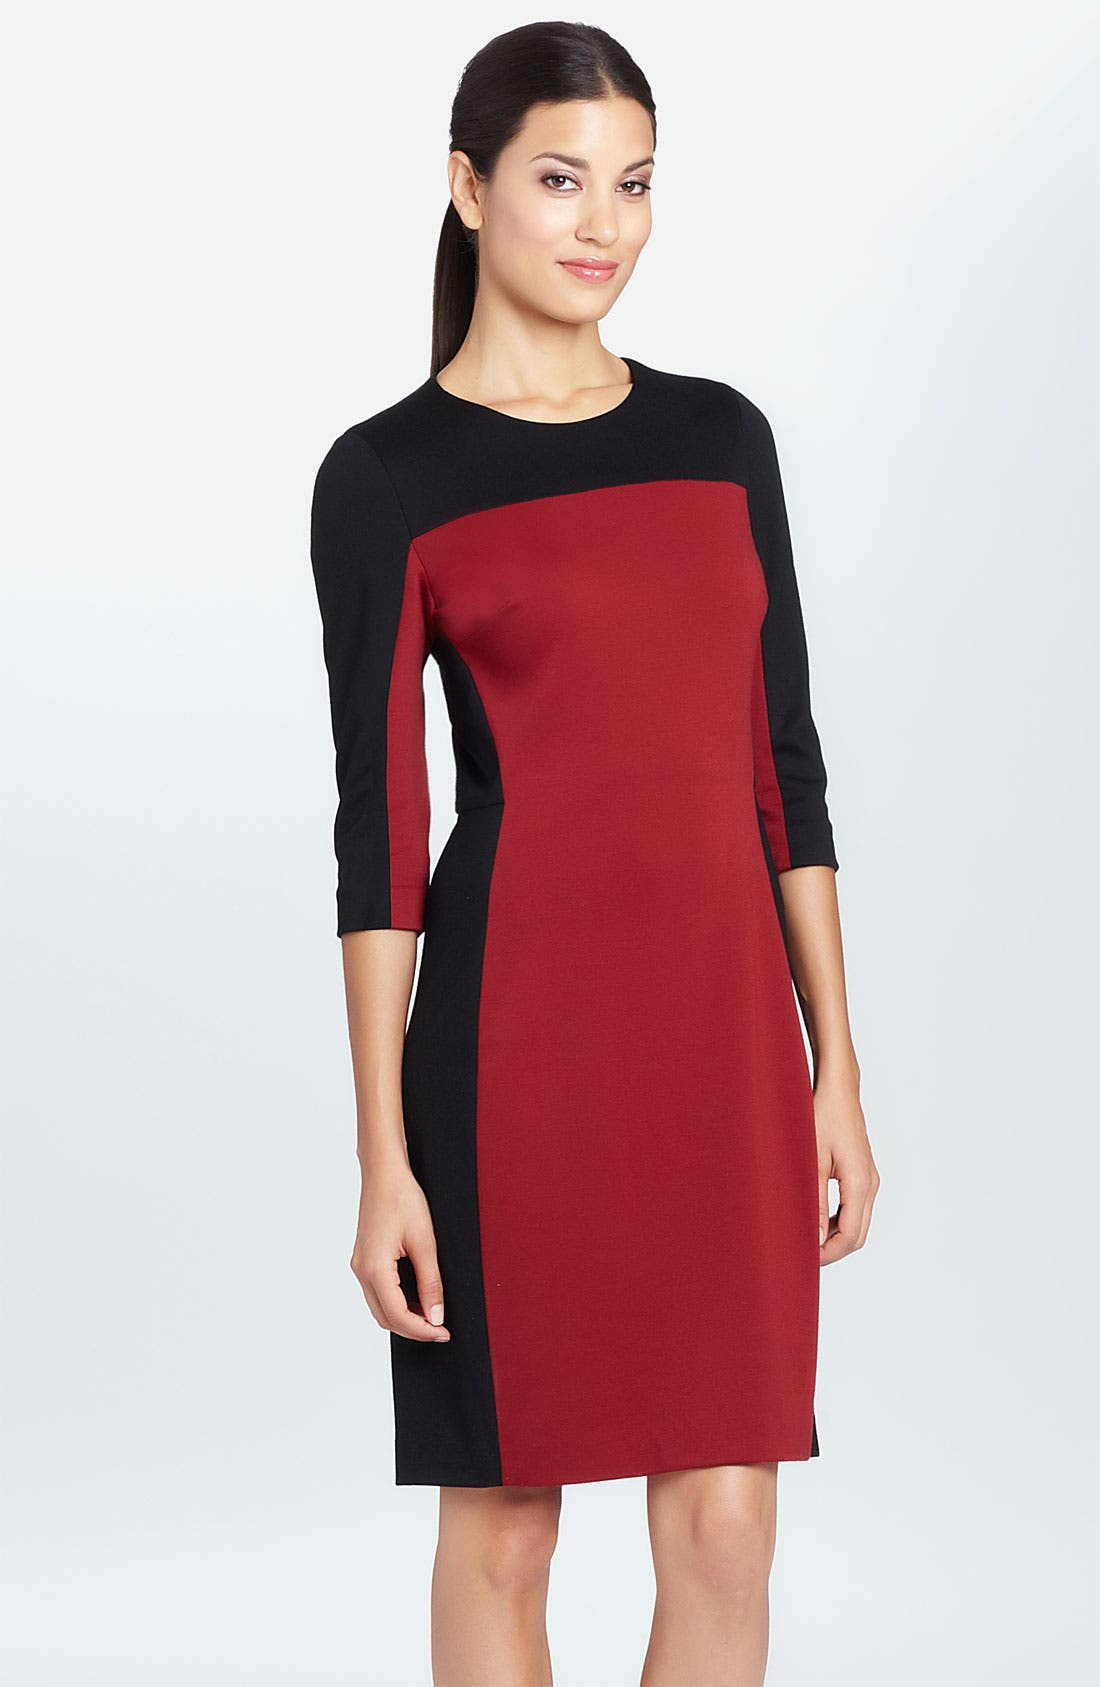 Alternate Image 1 Selected - Cynthia Steffe 'Selma' Colorblock Ponte Sheath Dress